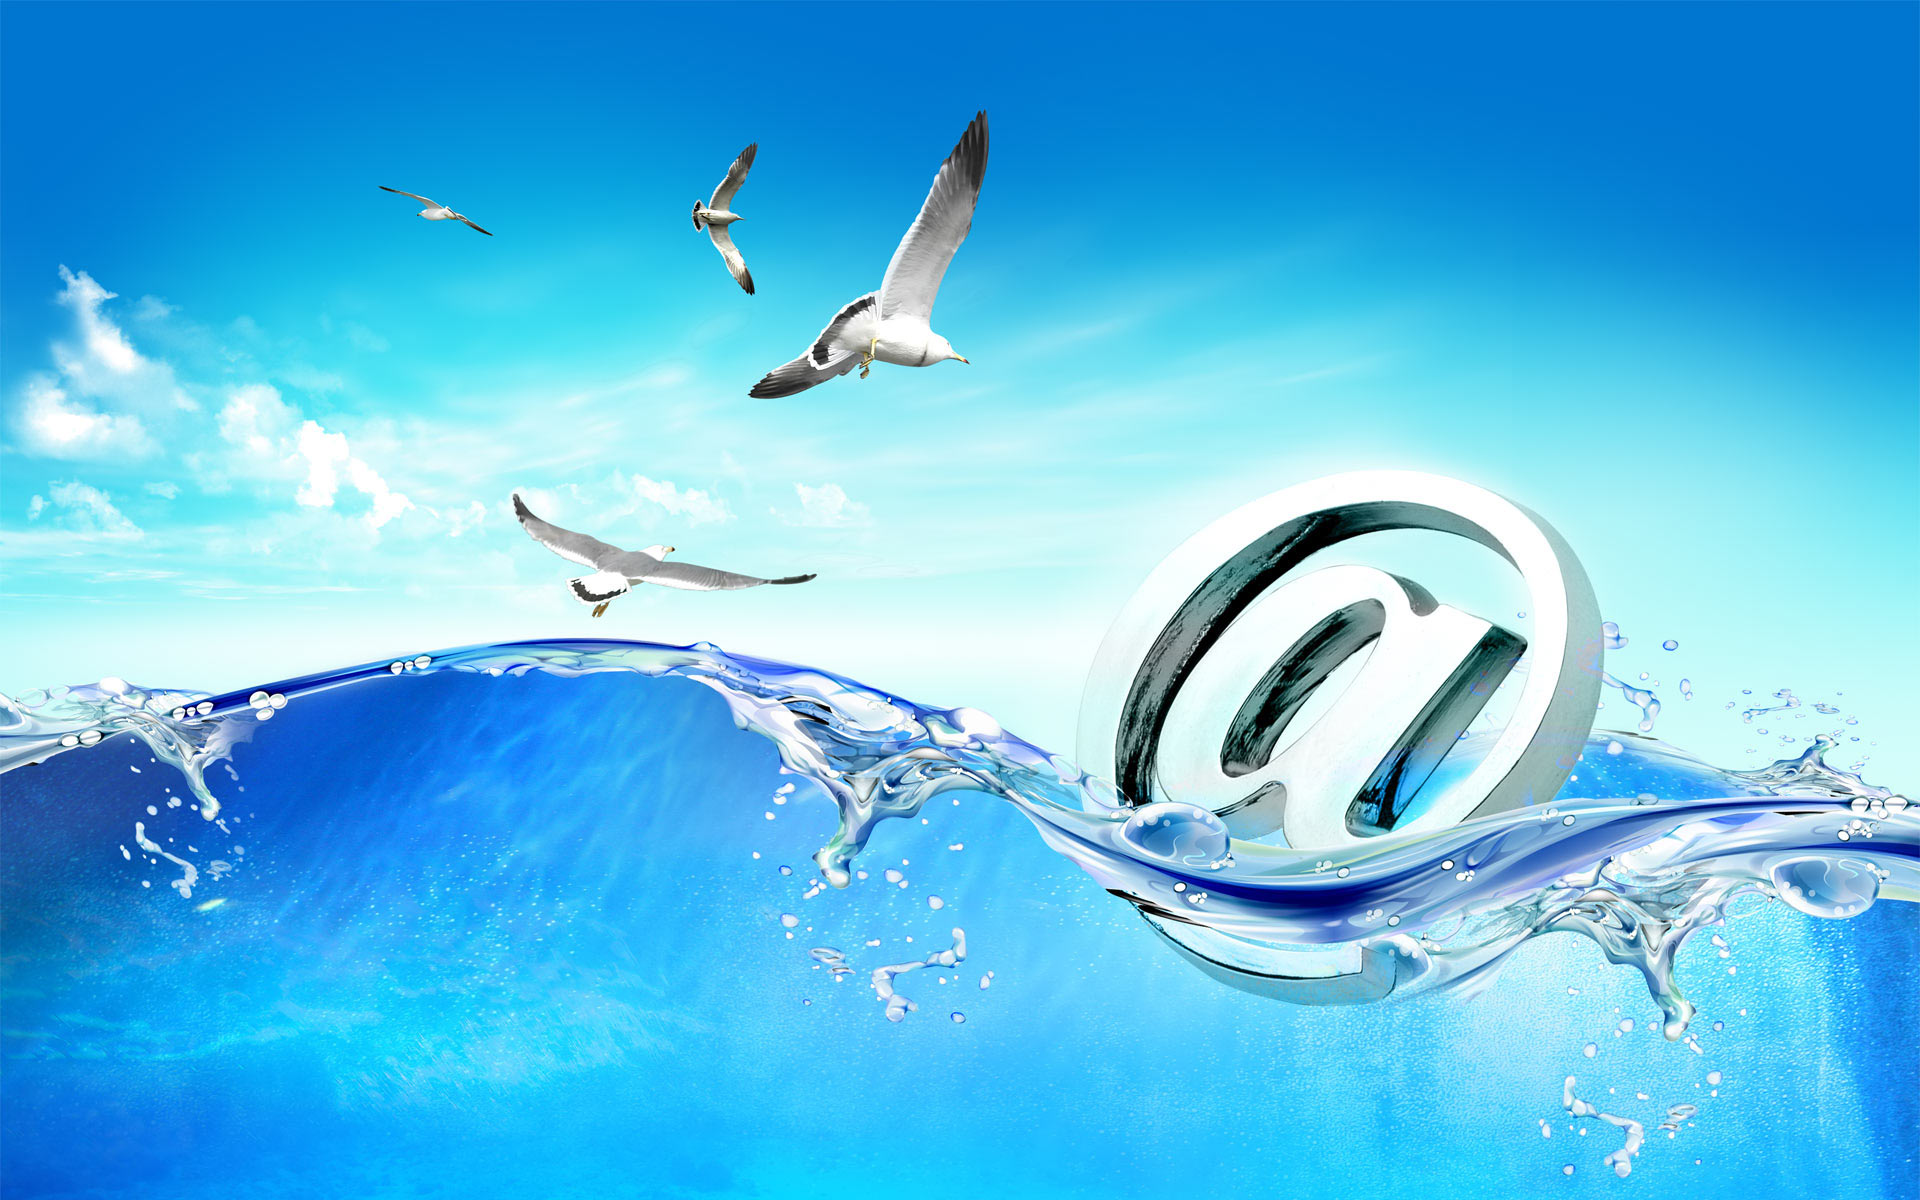 Gmail themes background image - Google Gmail Desktop Hd Wallpaper High Quality Wallpapers Wallpaper